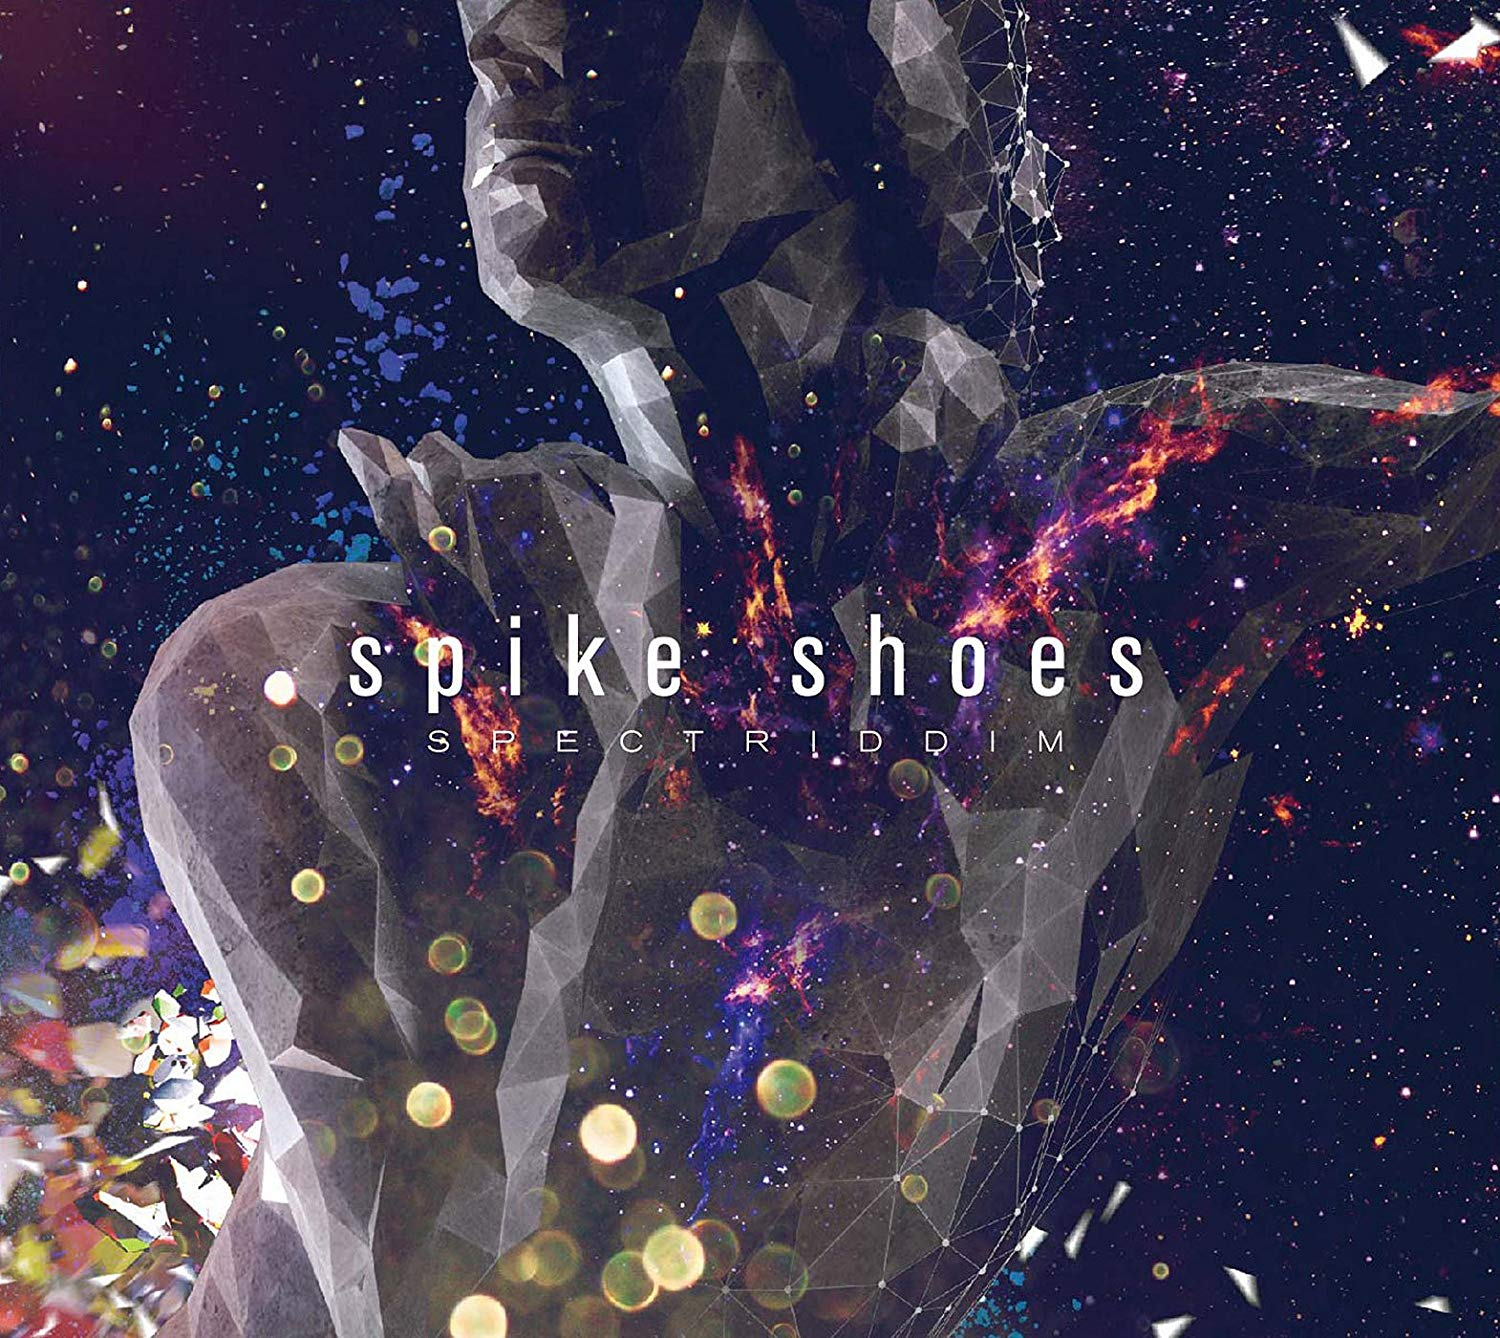 spike shoes 「spectriddim」